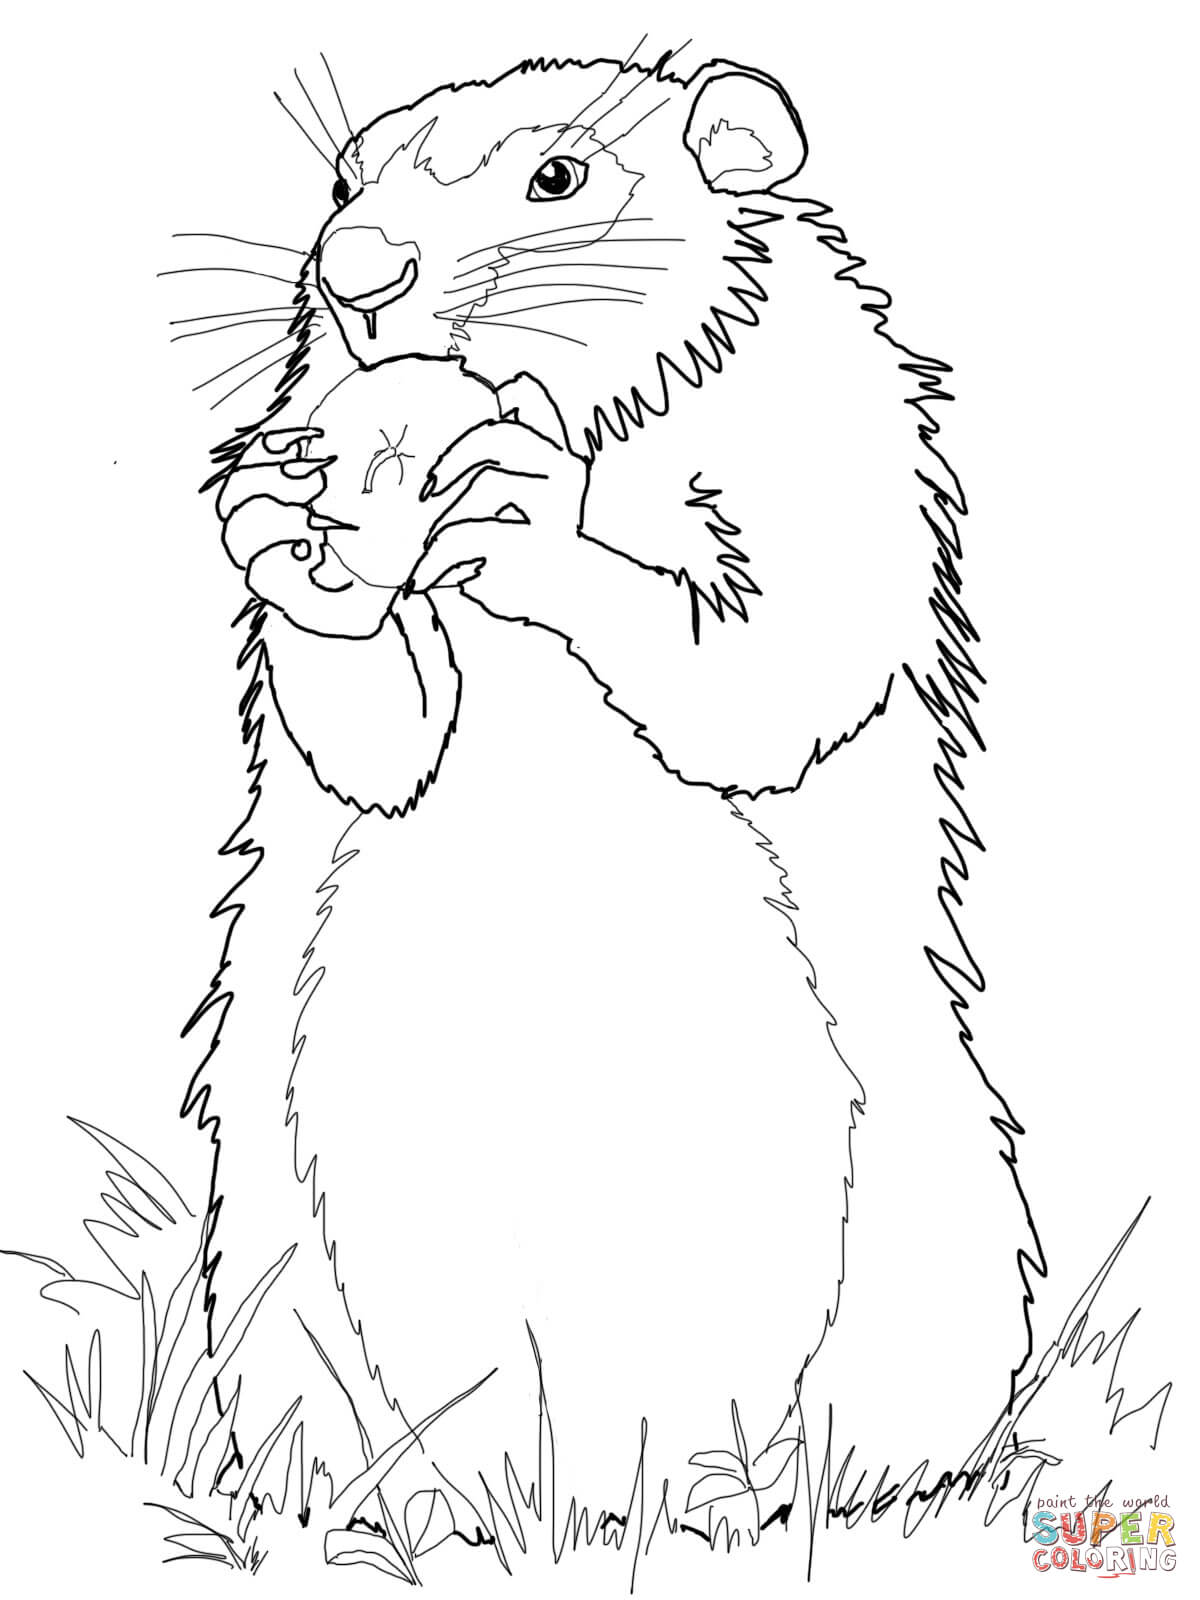 Woodchuck Eats Apple Coloring Page